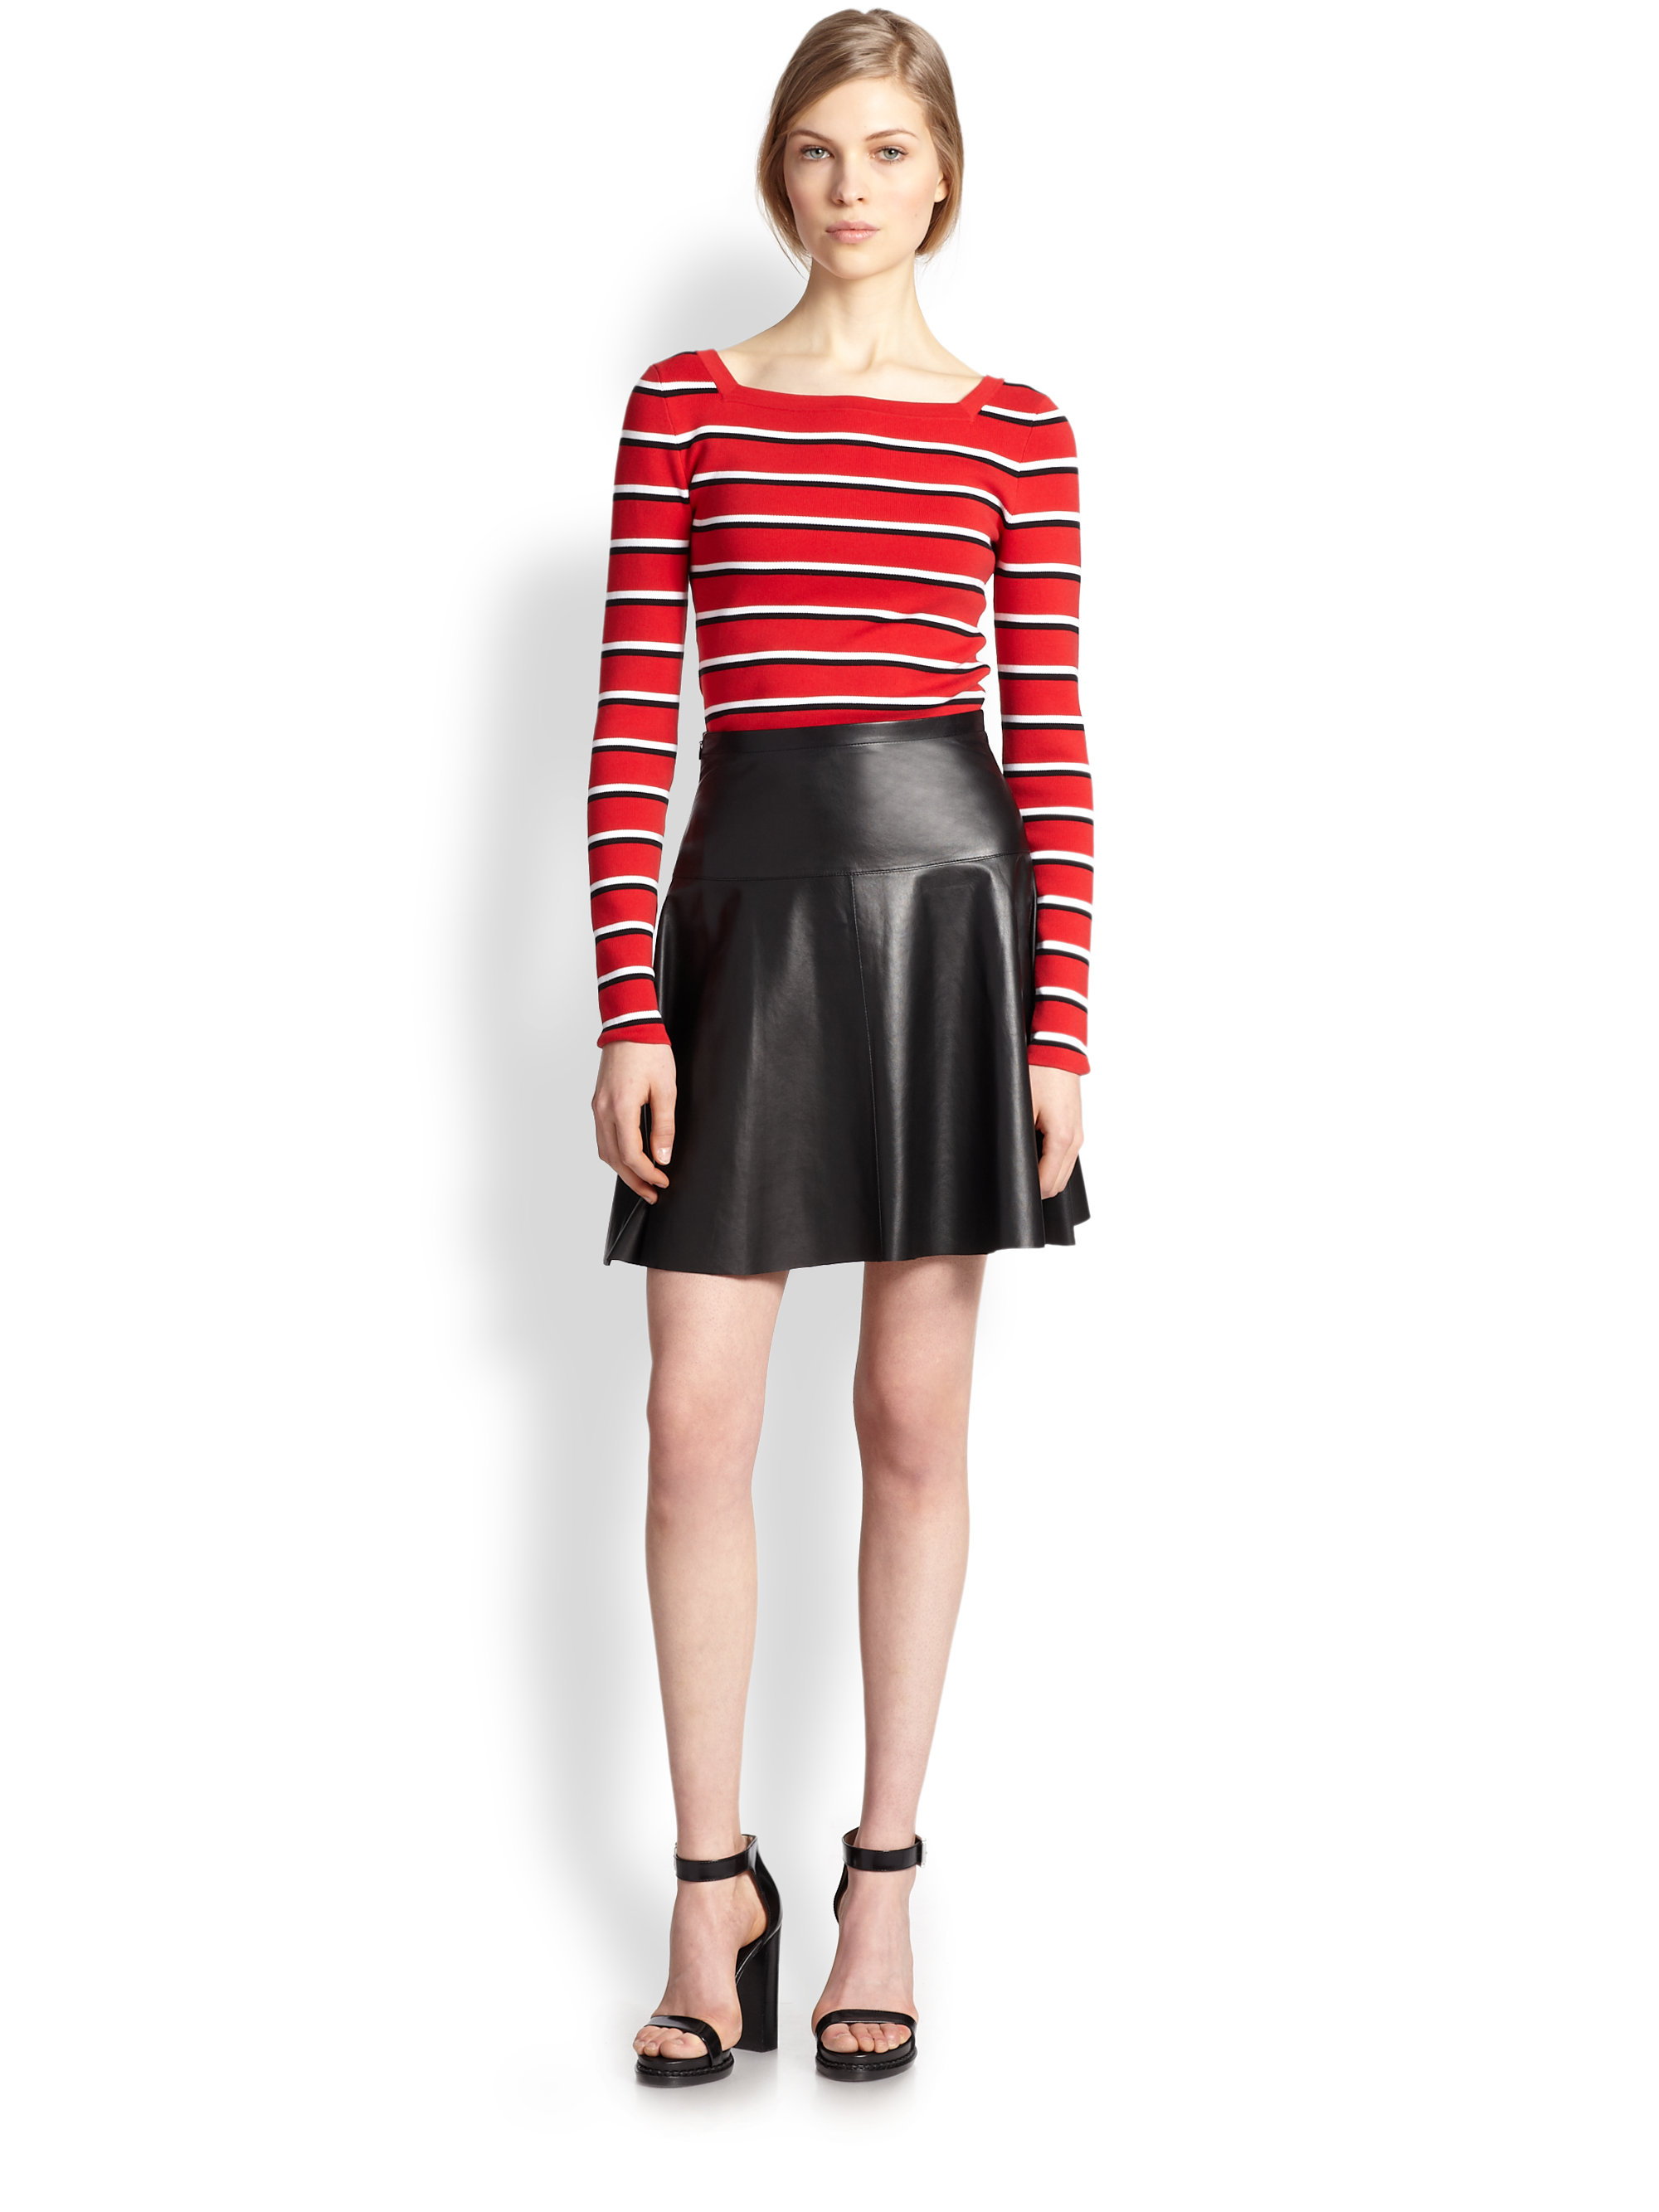 ASOS DESIGN Tall leather look mini skirt with pockets zips and poppers. $ ASOS DESIGN leather look mini skirt with gathered waist and belt. $ New Look Leather Look Mini. $ ASOS DESIGN Tall sculpt me leather look midi skirt. $ Noisy May Leather Look Skirt. $